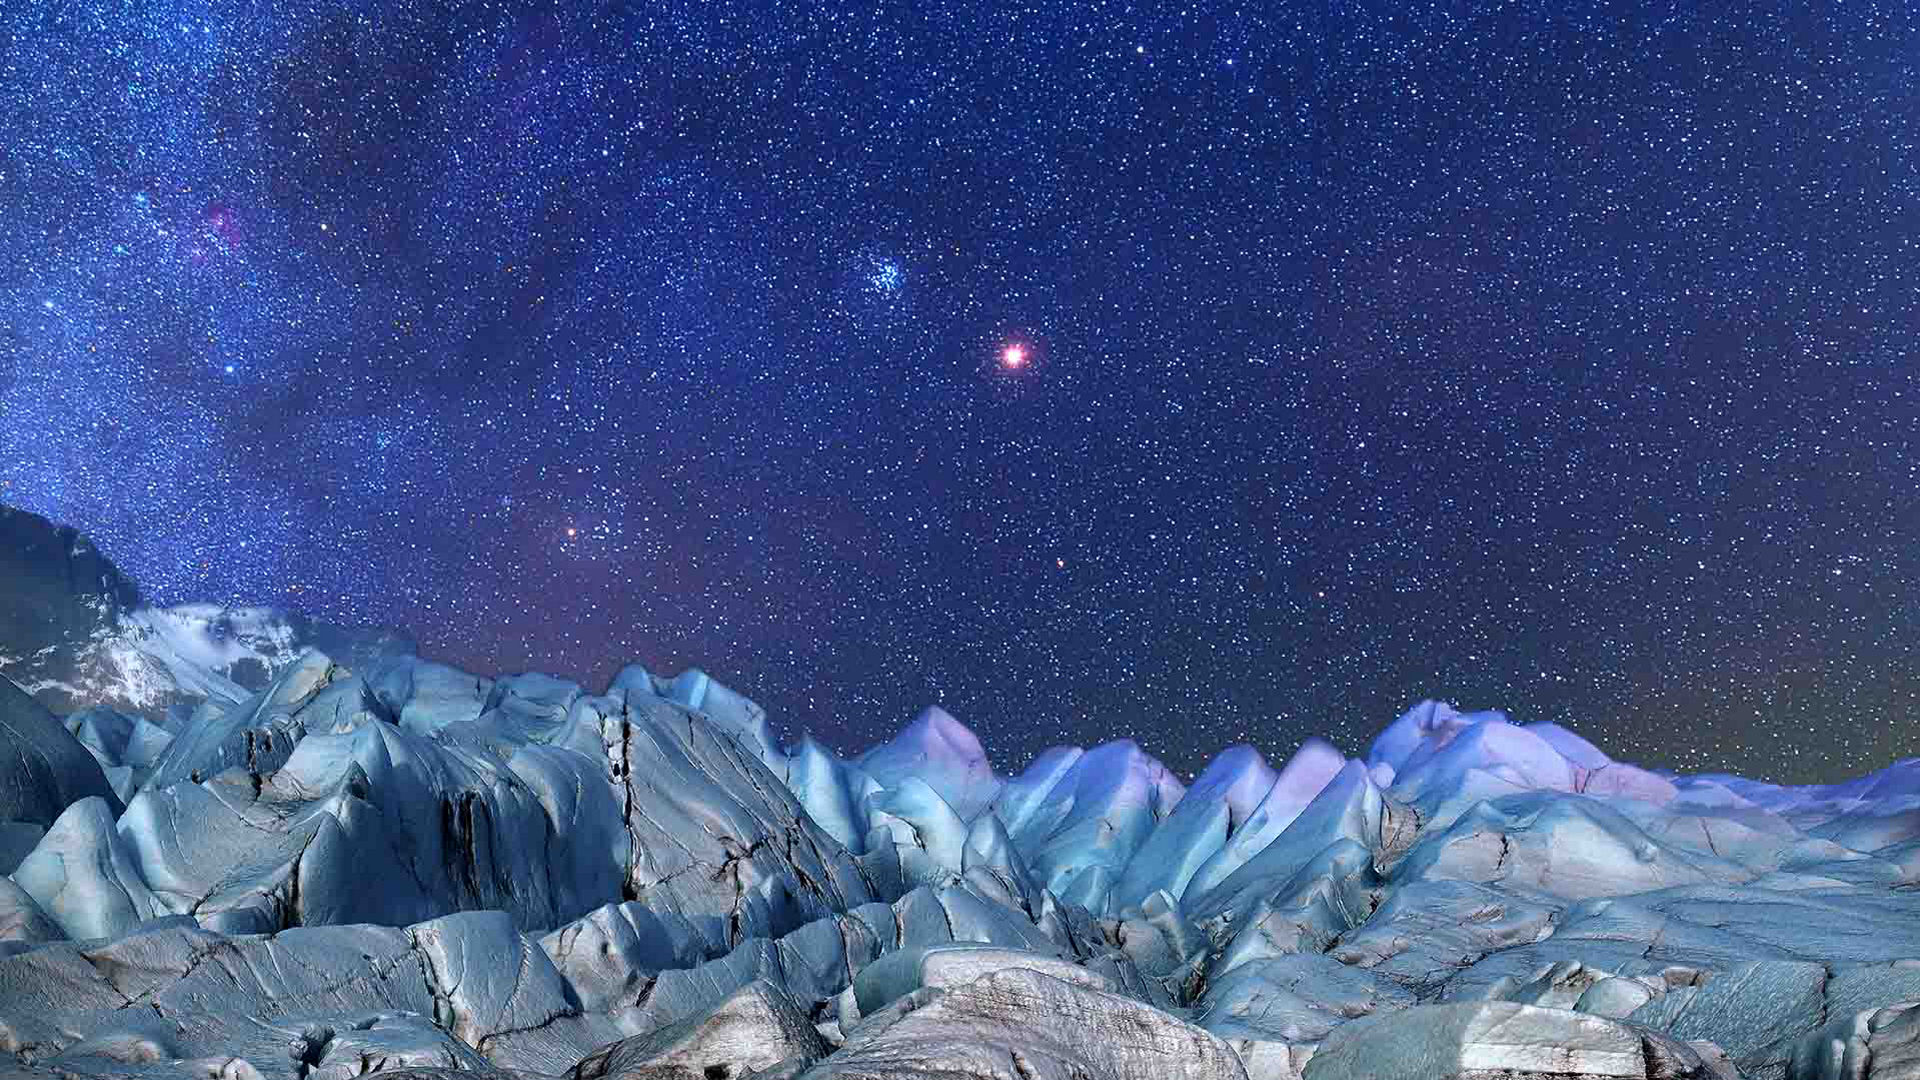 Mars and Pleiades over rocks